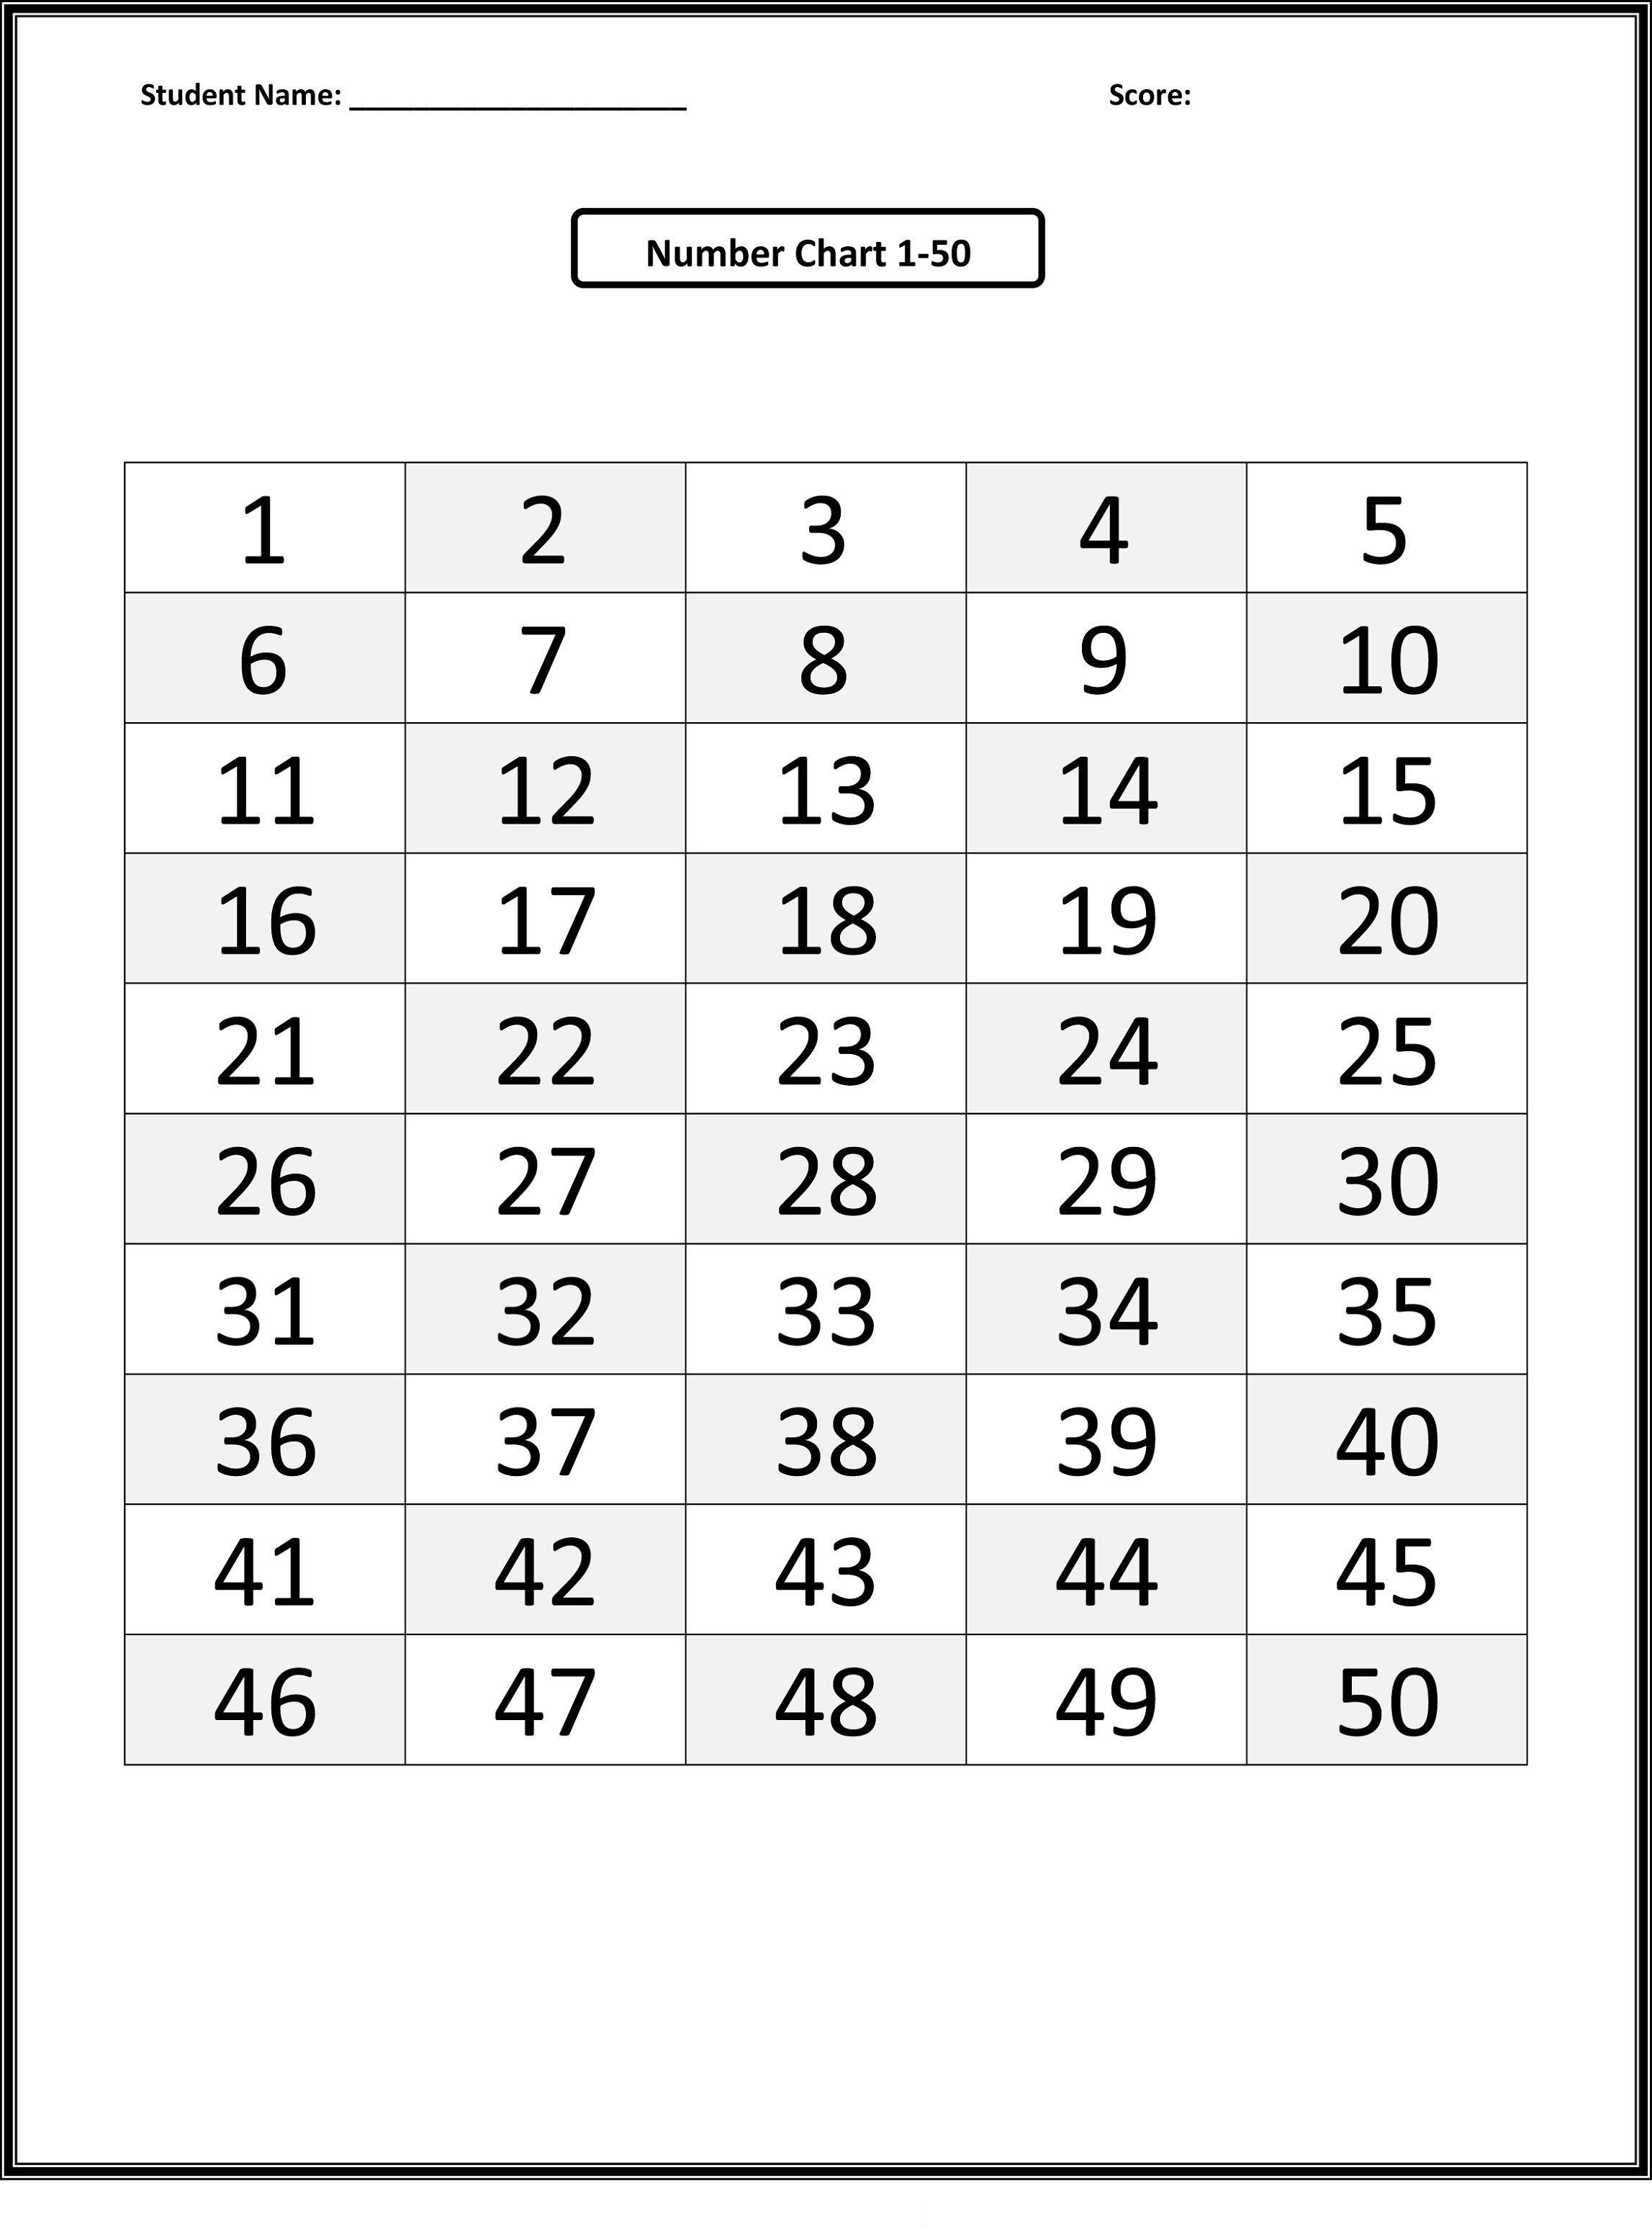 Number Charts 1-50 To Print | Activity Shelter - Free Printable Number Chart 1 50